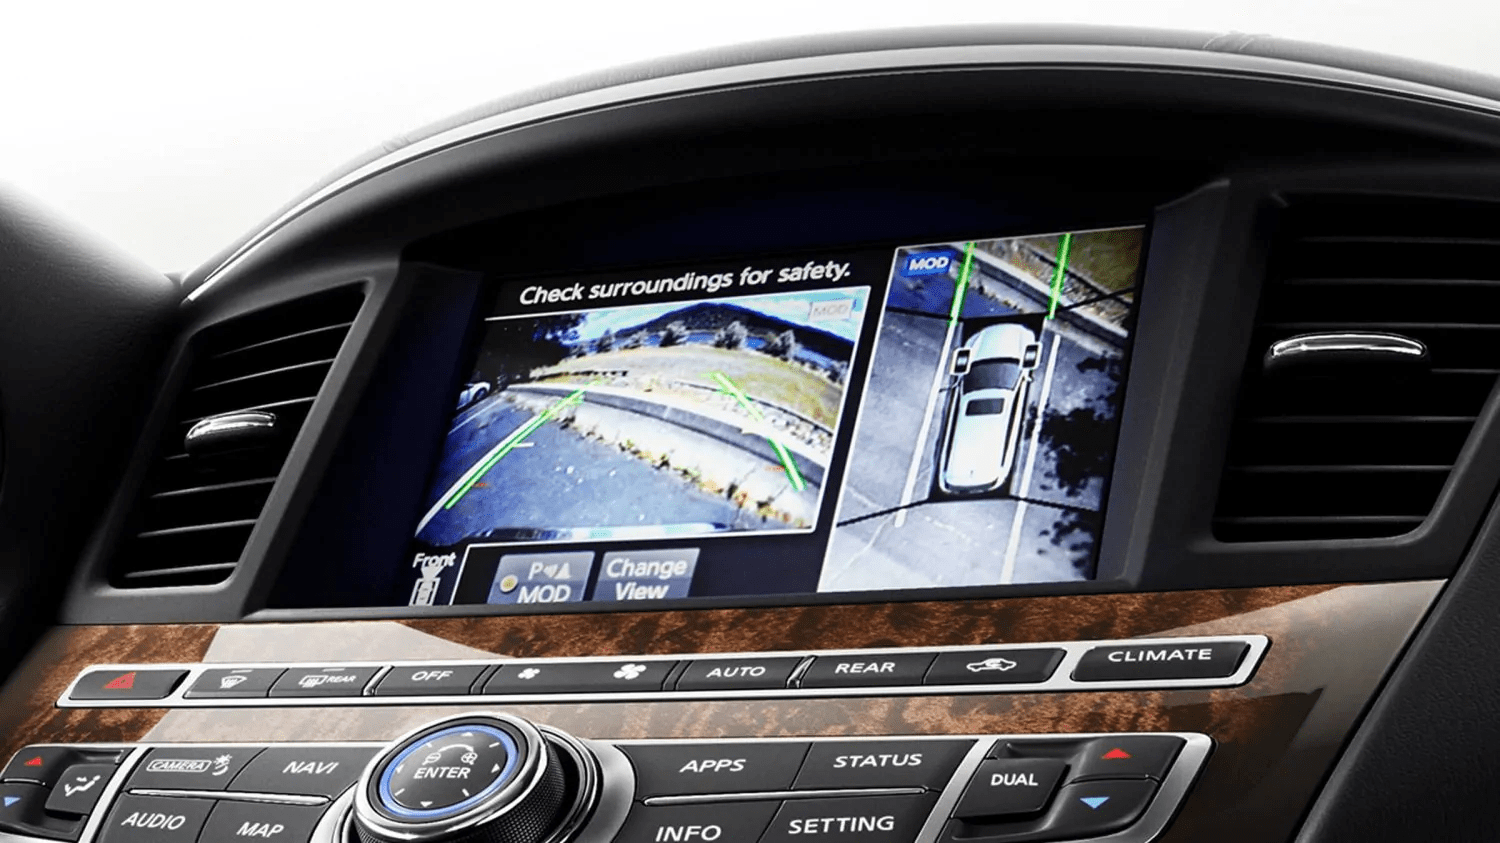 2019 INFINITI QX60 interior safety features